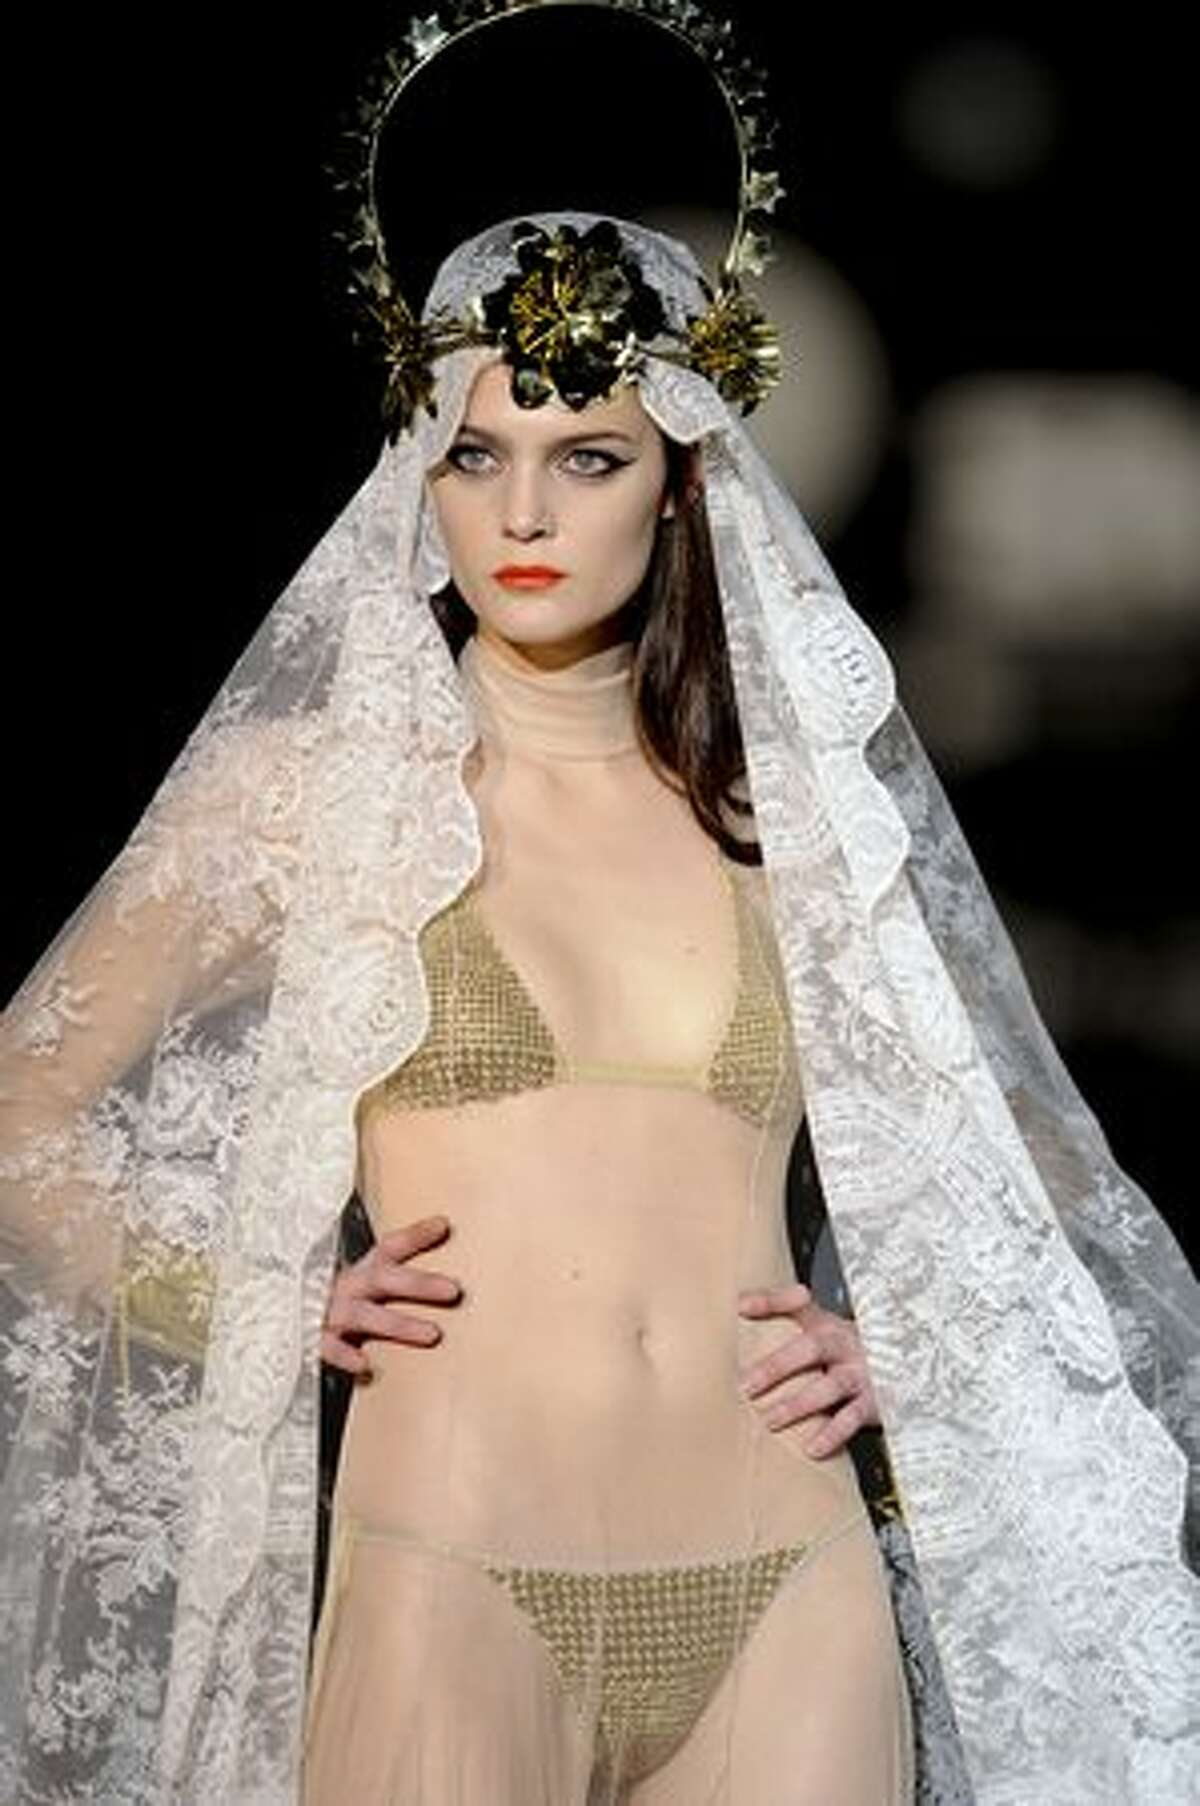 A model displays an outfit by designer Andres Sarda during the Madrid Cibeles Fashion week in Madrid.